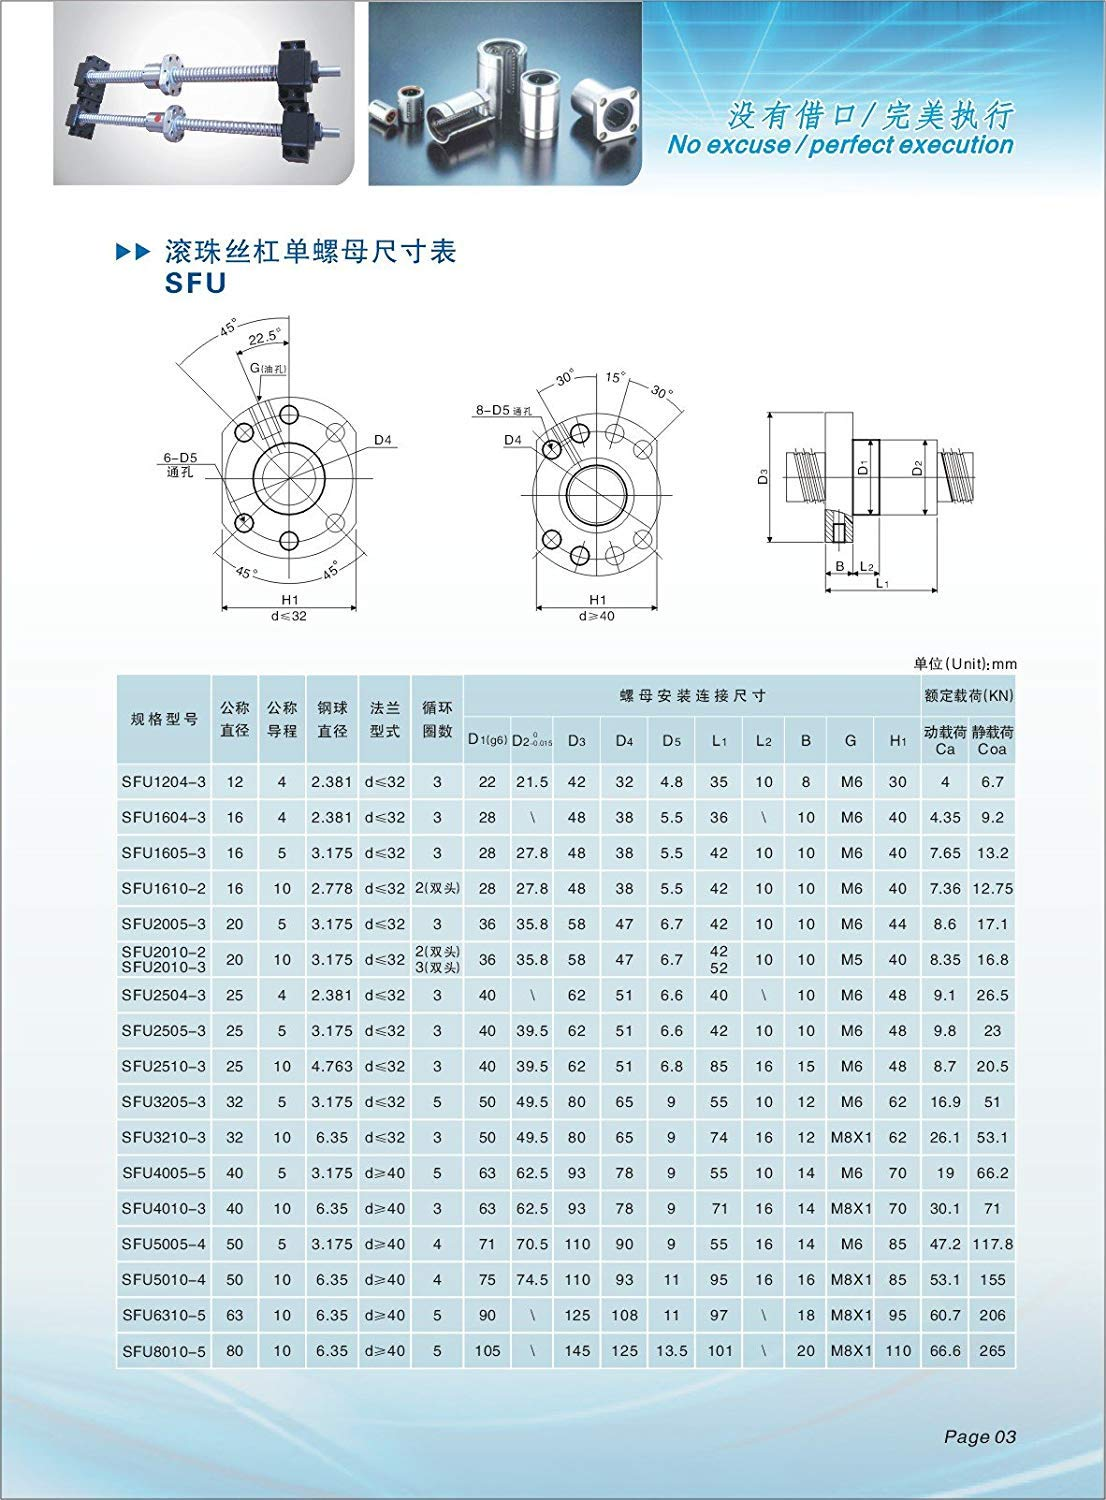 TEN-HIGH Ball Screw CNC Parts SFU2005 RM2005 20mm 1500mm with Metal Deflector Ball Screw nut BK//BF15 End Supports Ball NUT HOUSINGS 1pcs Coupler with end Machining 1500mm Length Approx 59.06inch